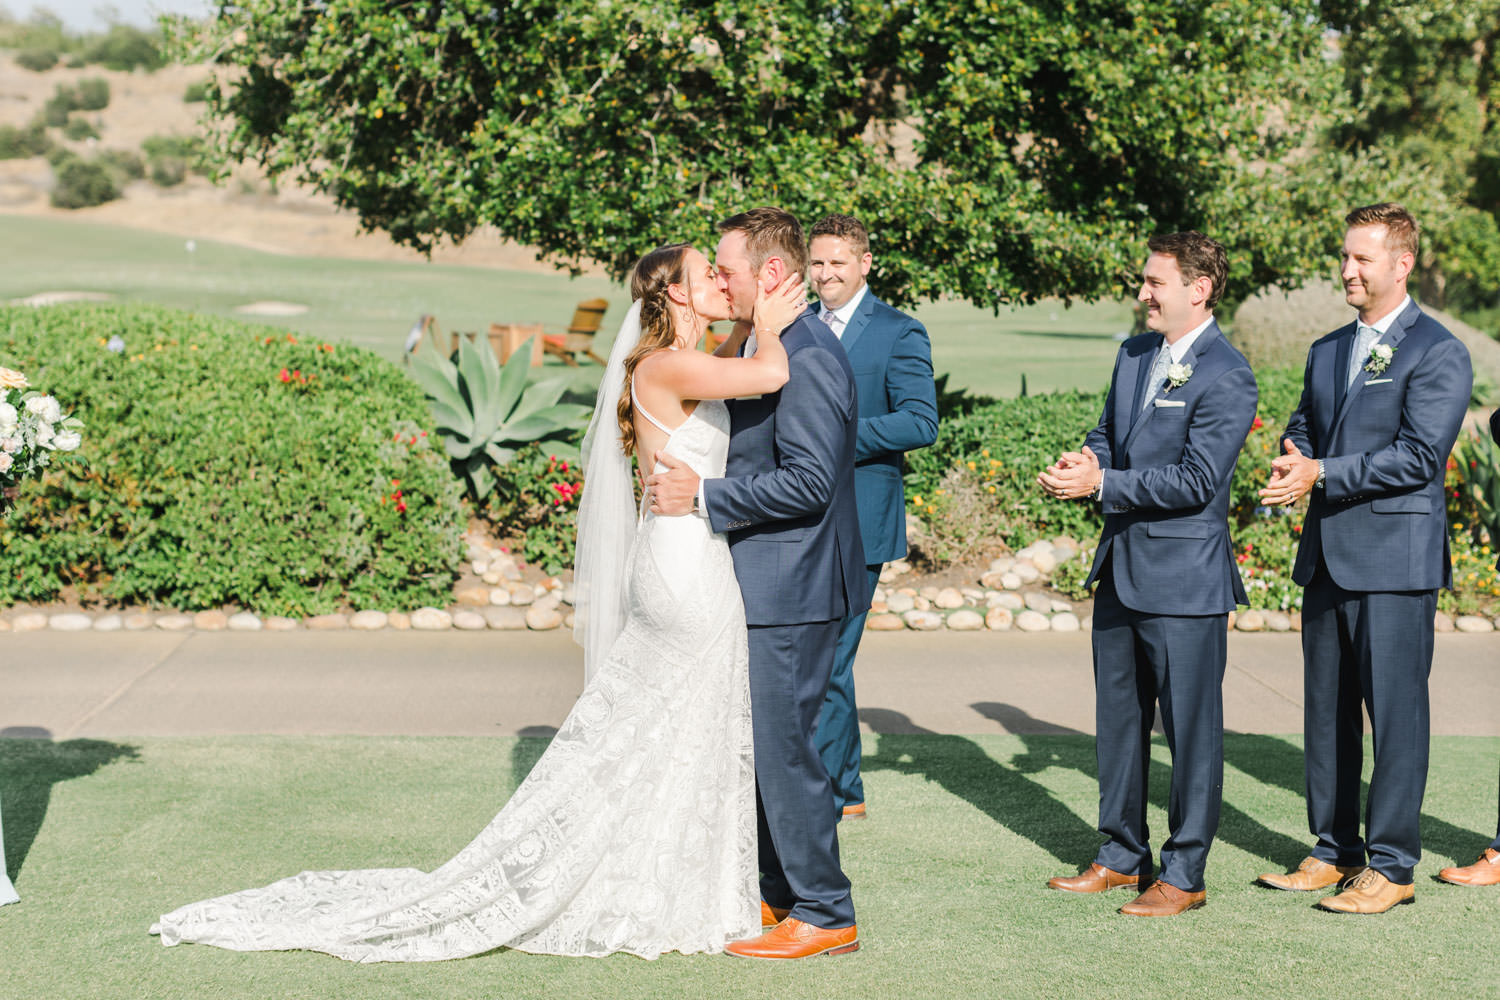 First kiss at Santaluz Club Golf course wedding ceremony with a view, Cavin Elizabeth Photography